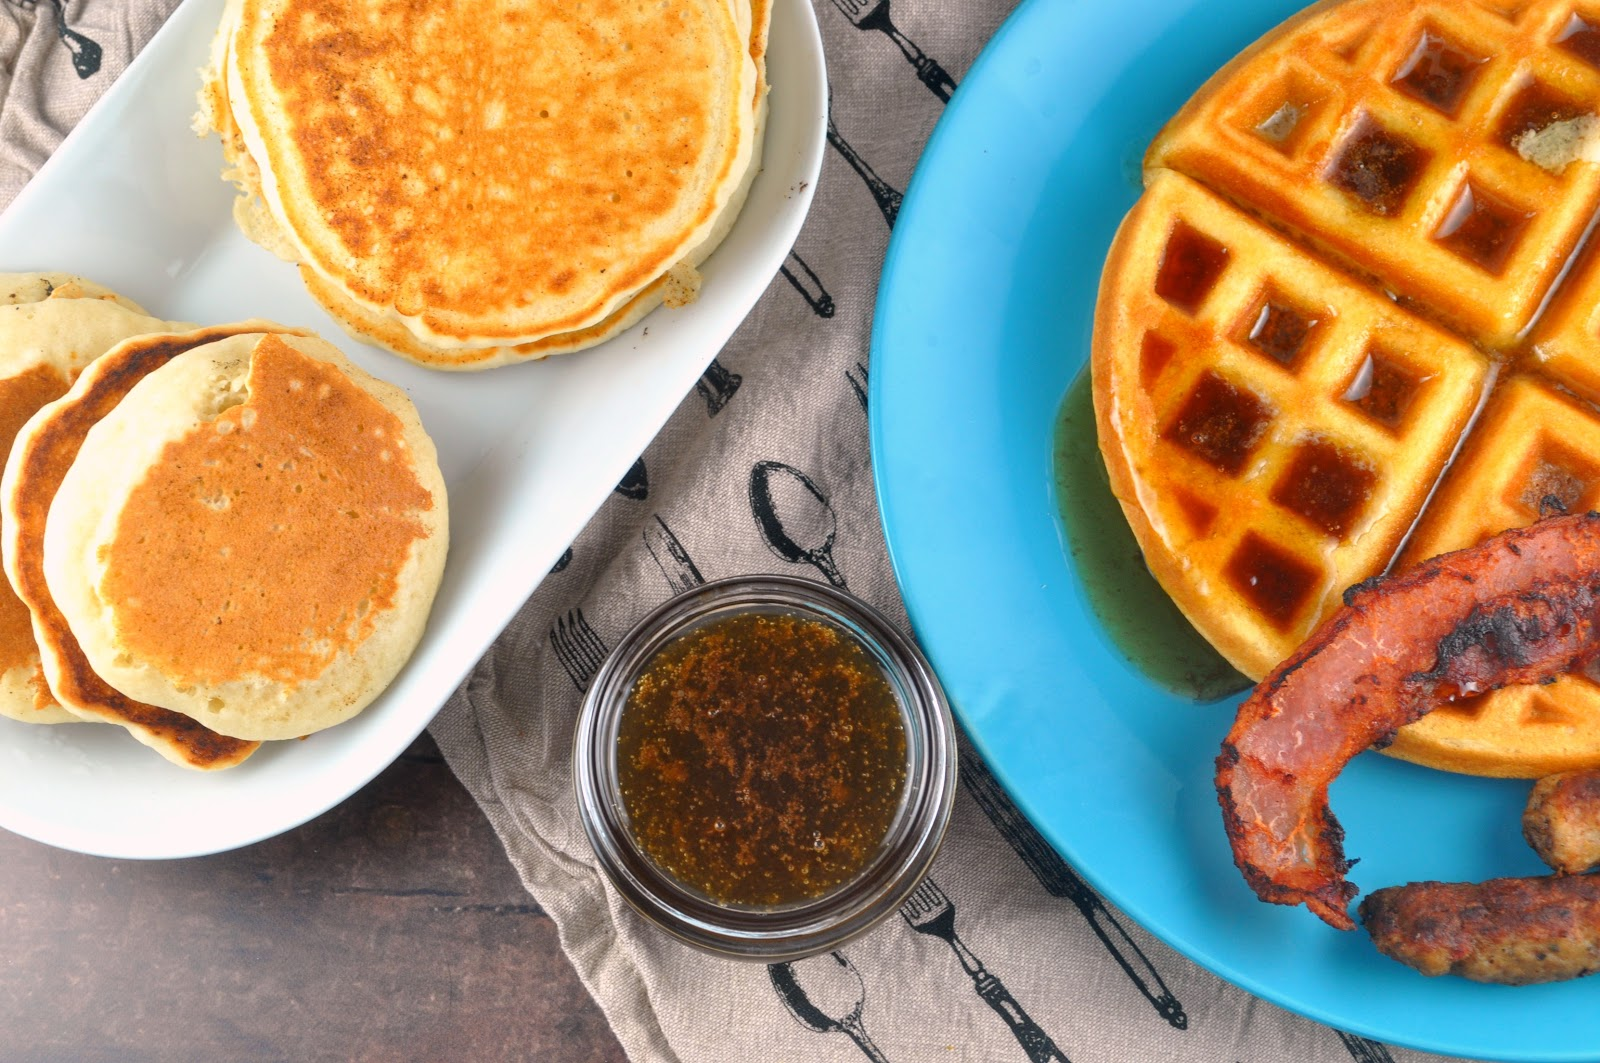 Food hussy recipe homemade syrup the food hussy we had pancakes waffles bacon sausage and homemade syrup the syrup was super easy too brown sugar water butter and vanilla thats it ccuart Image collections